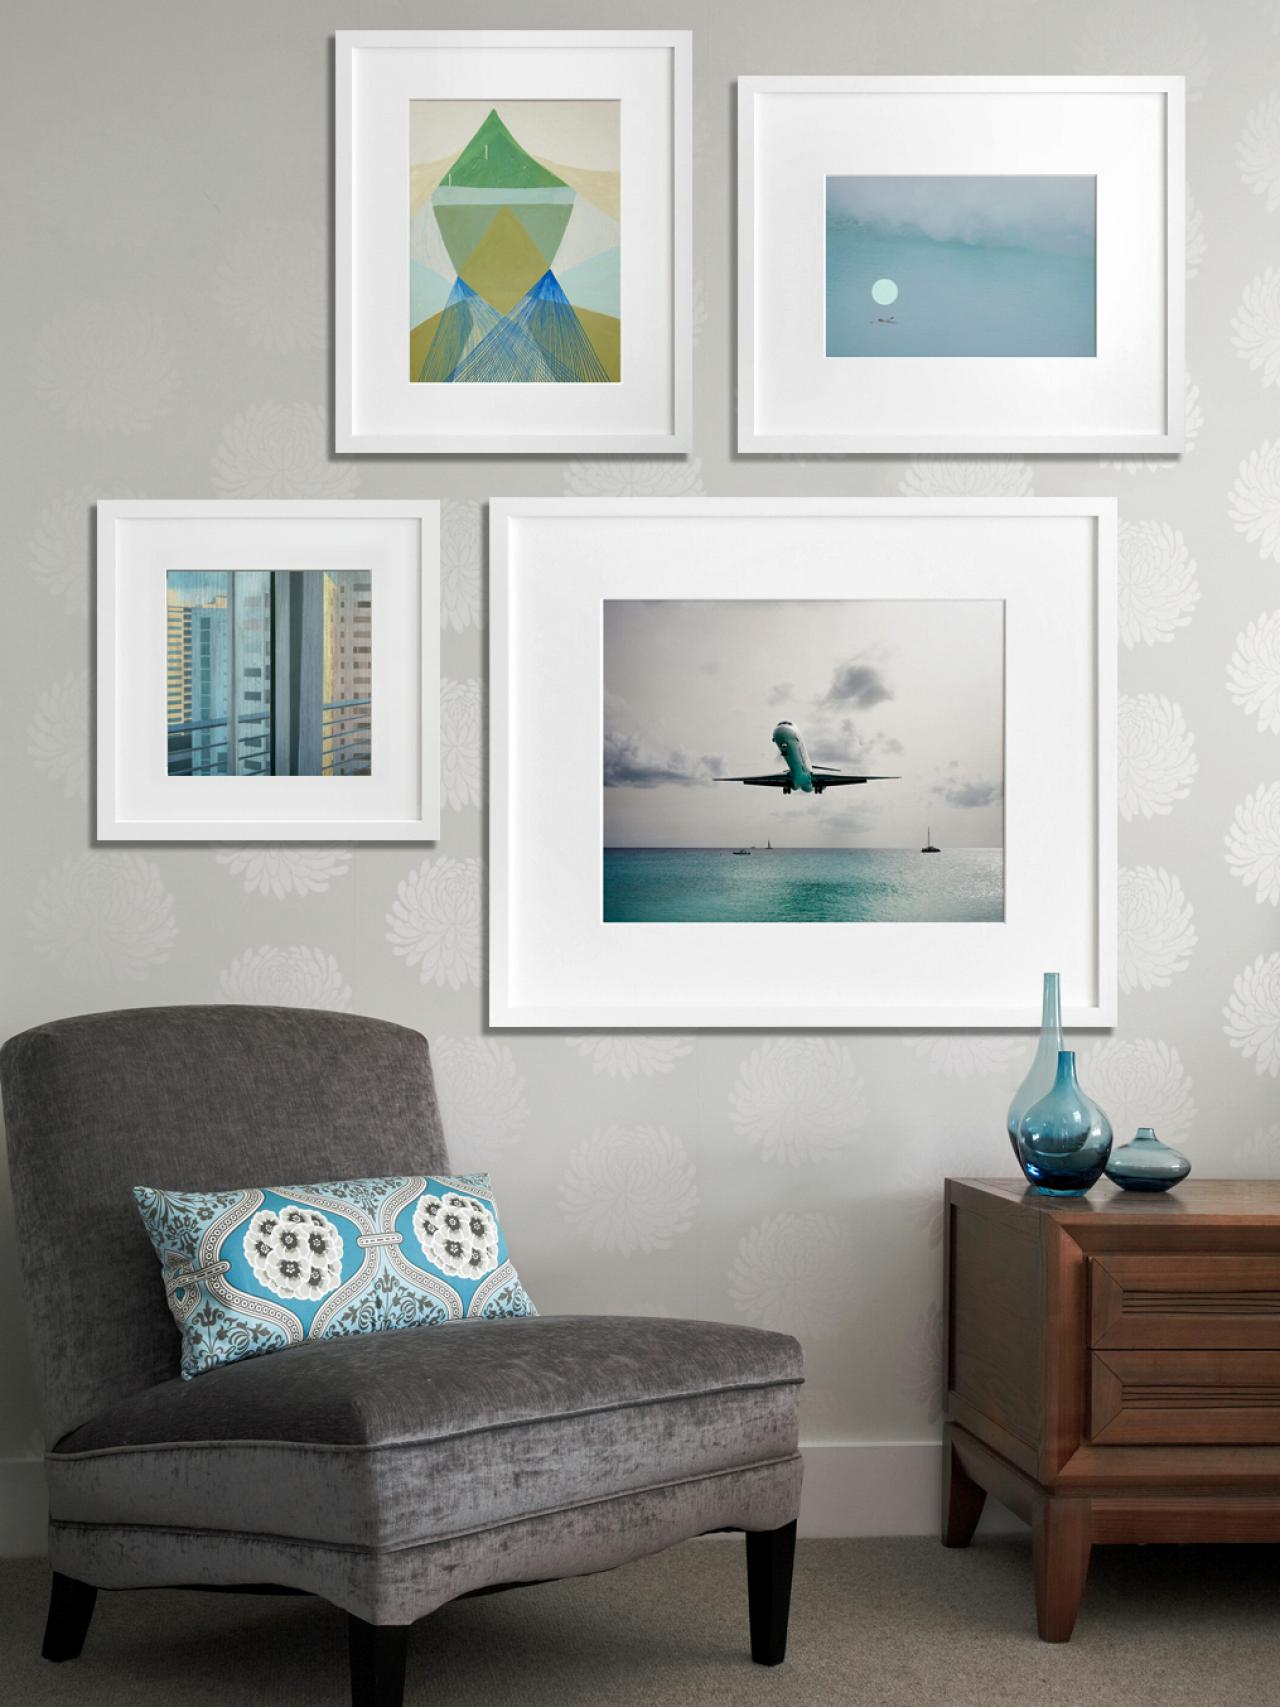 Photo Wall gallery wall inspiration from hgtv fans | hgtv's decorating